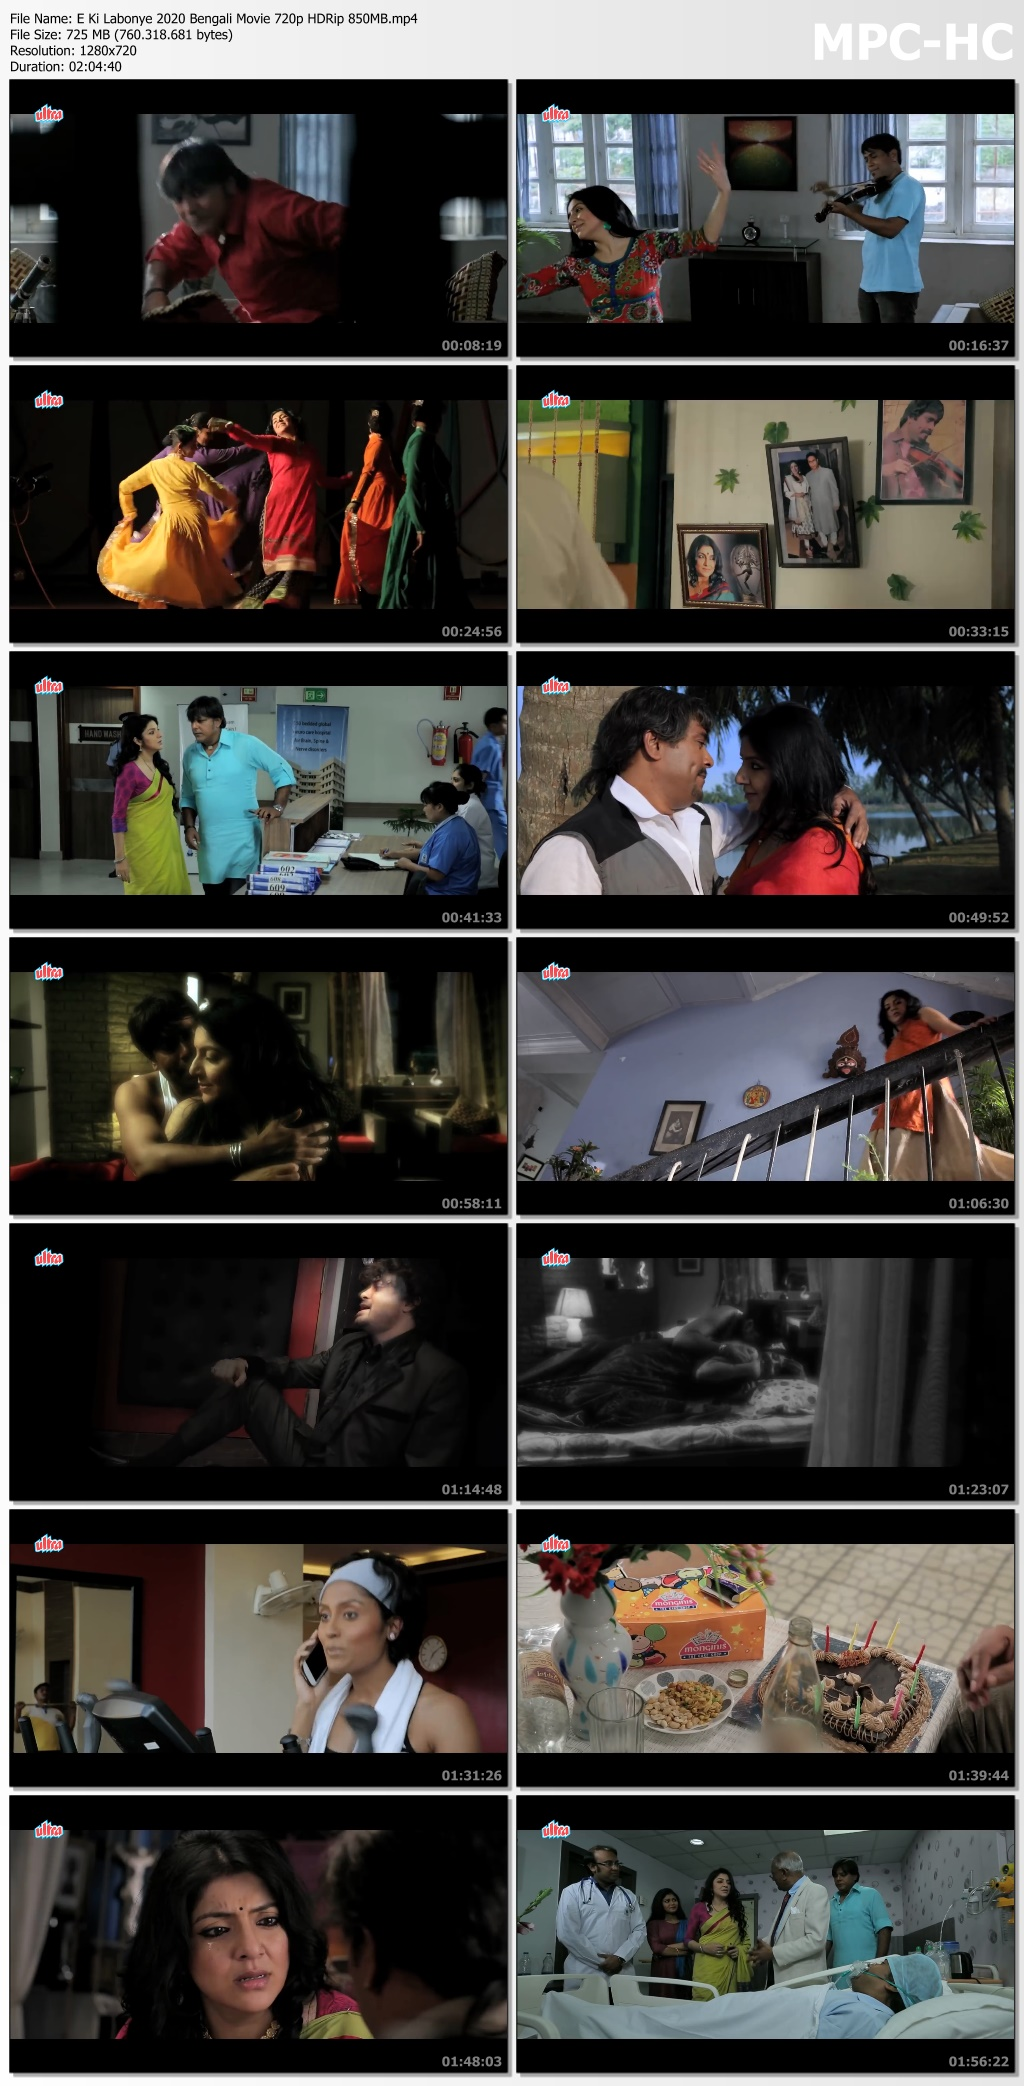 E-Ki-Labonye-2020-Bengali-Movie-720p-HDRip-850-MB-mp4-thumbs